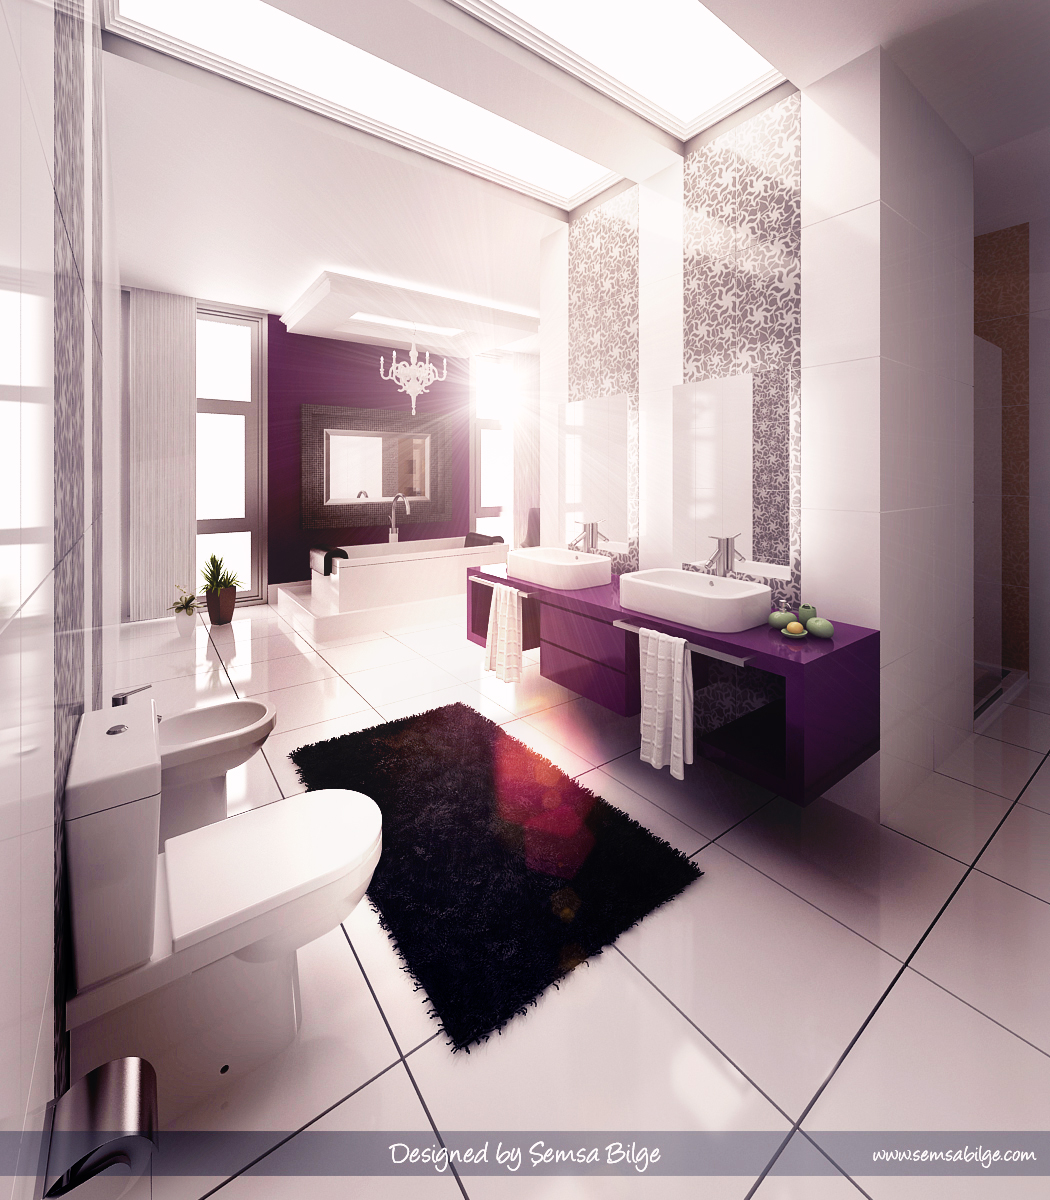 beautiful bathroom designs ideas interior design On beautiful bathroom decorating ideas